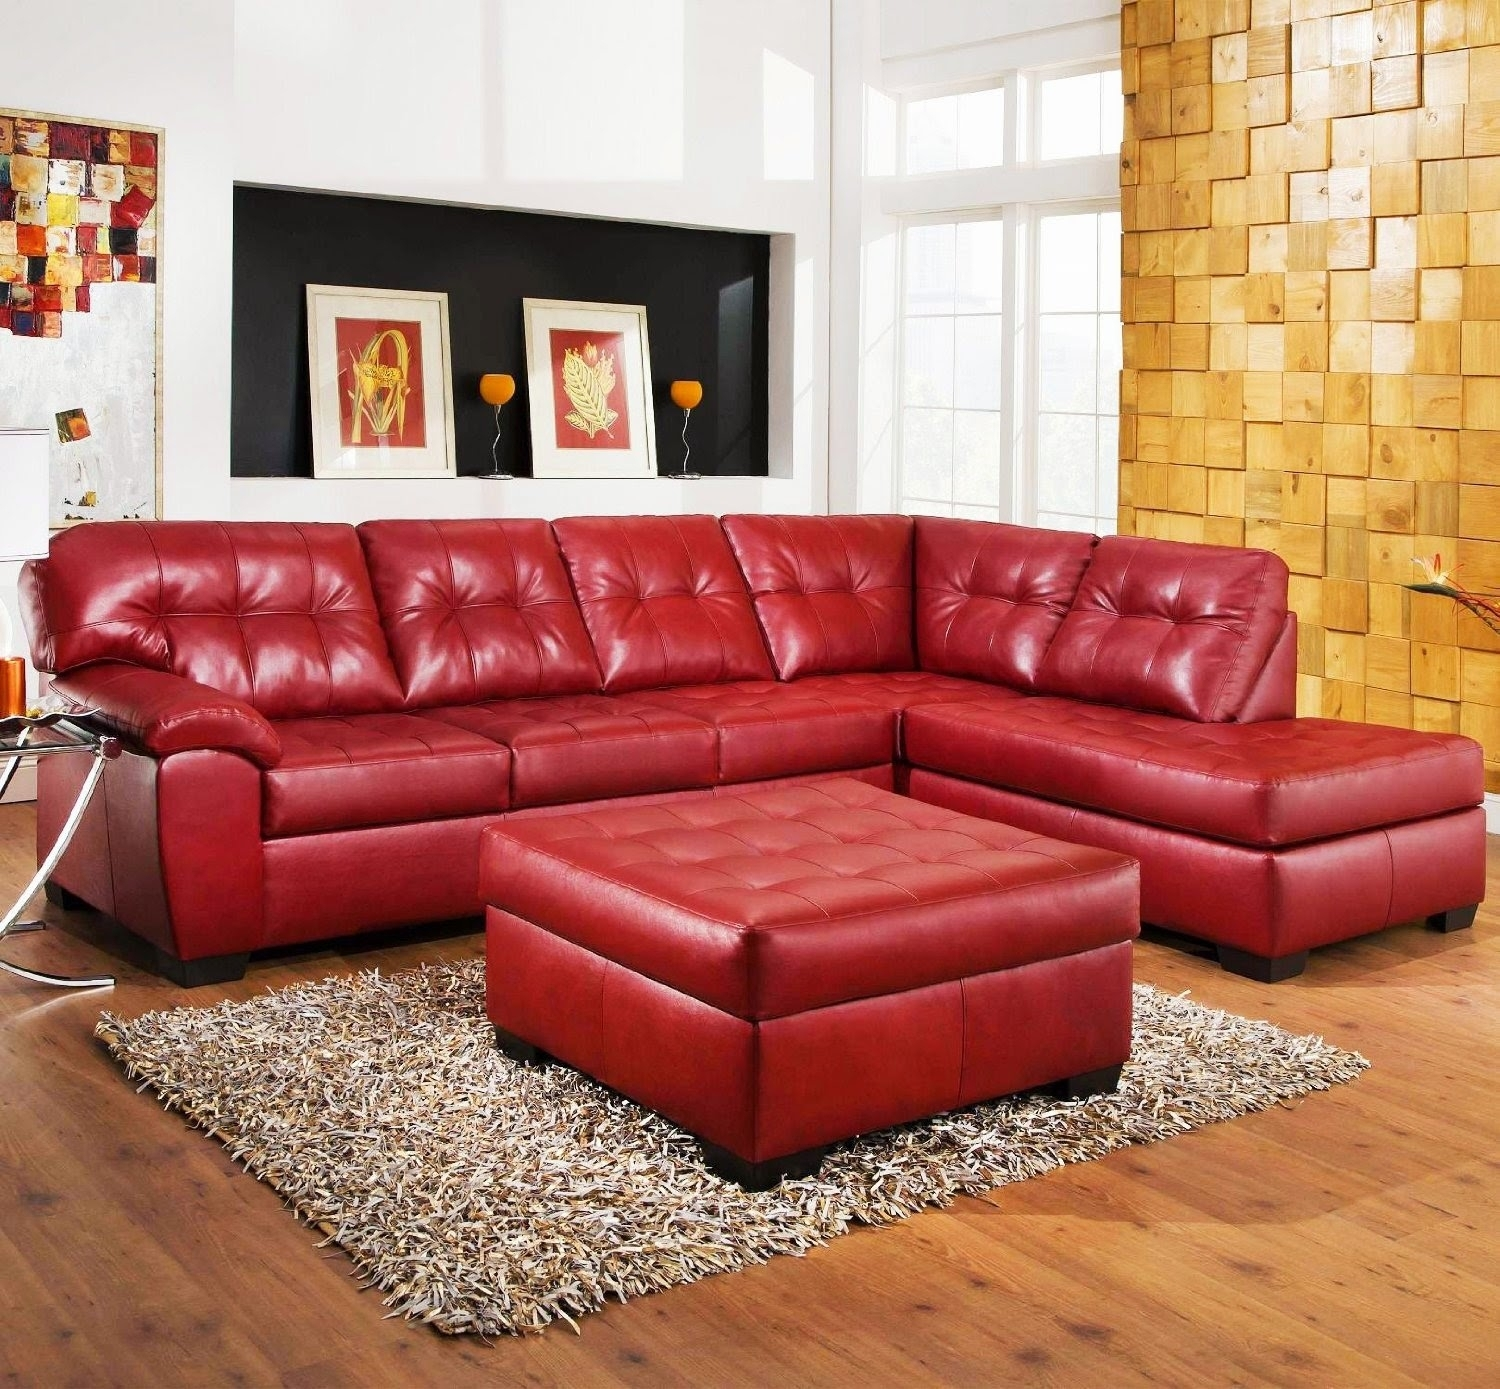 Red Leather Sofas And Loveseats Compact Nightstands Ottomans Regarding Red Leather Couches And Loveseats (Image 7 of 10)